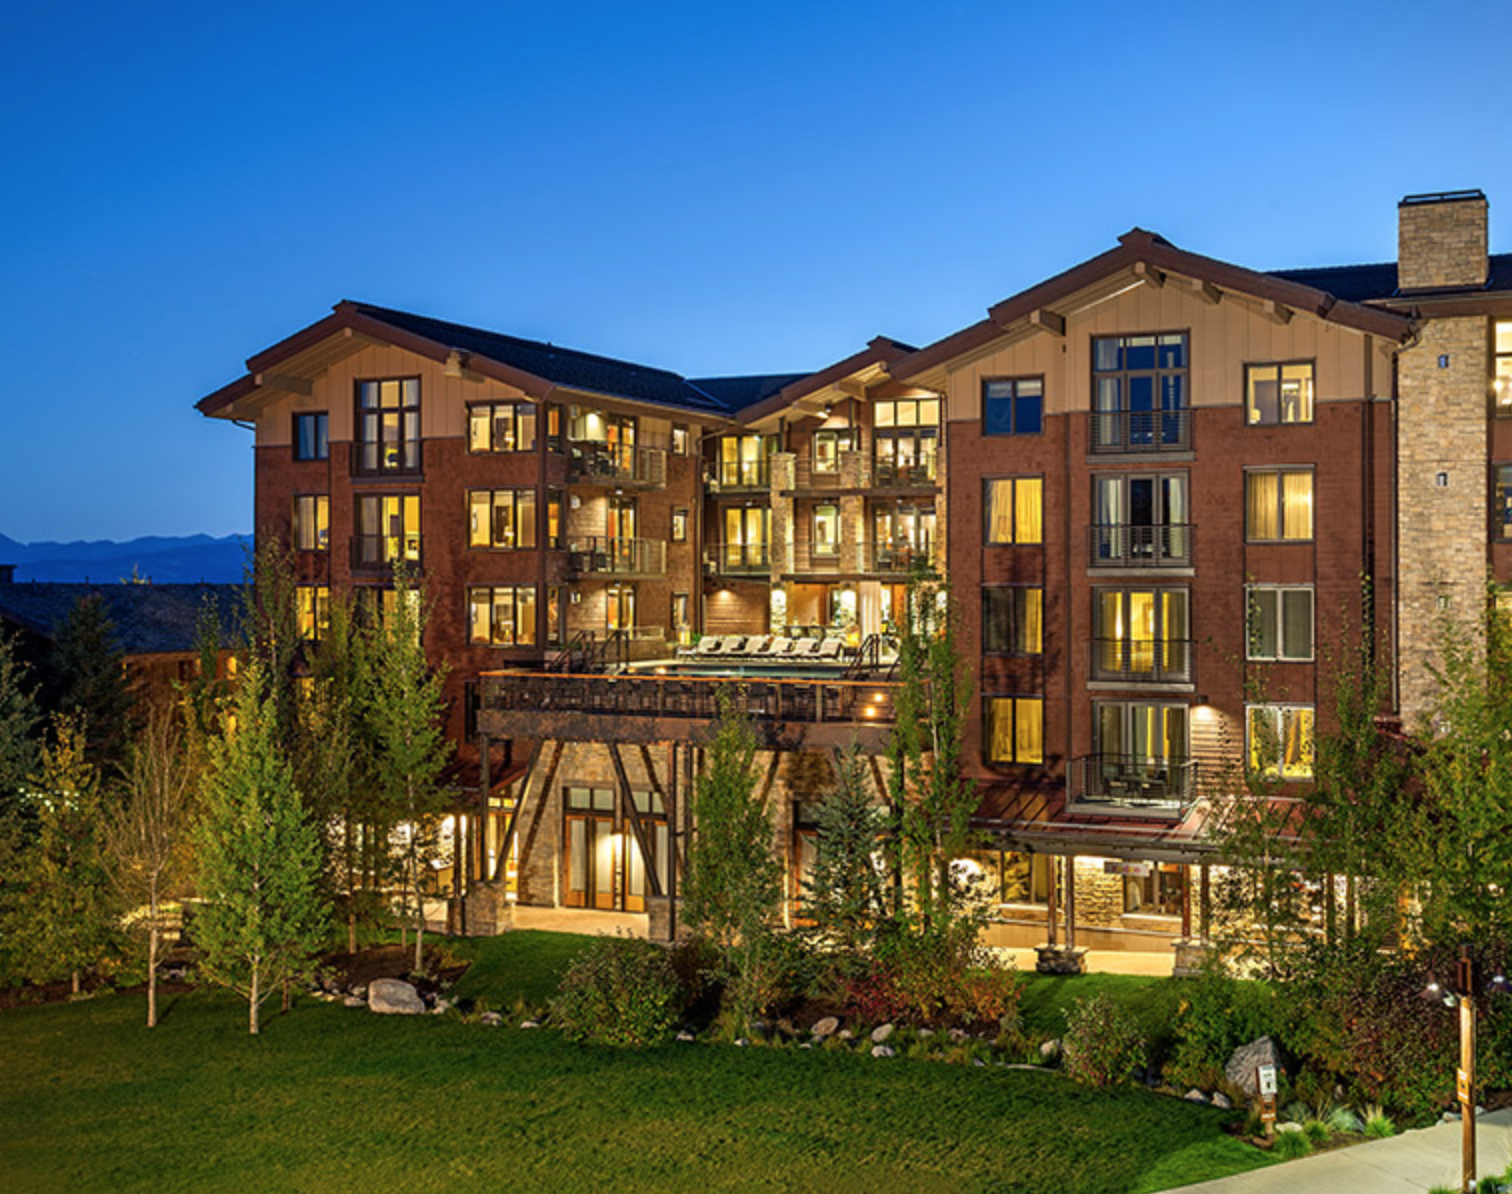 Hotel Terra borders Jackson Hole ski resort with out-the-door access to biking and hiking trails.